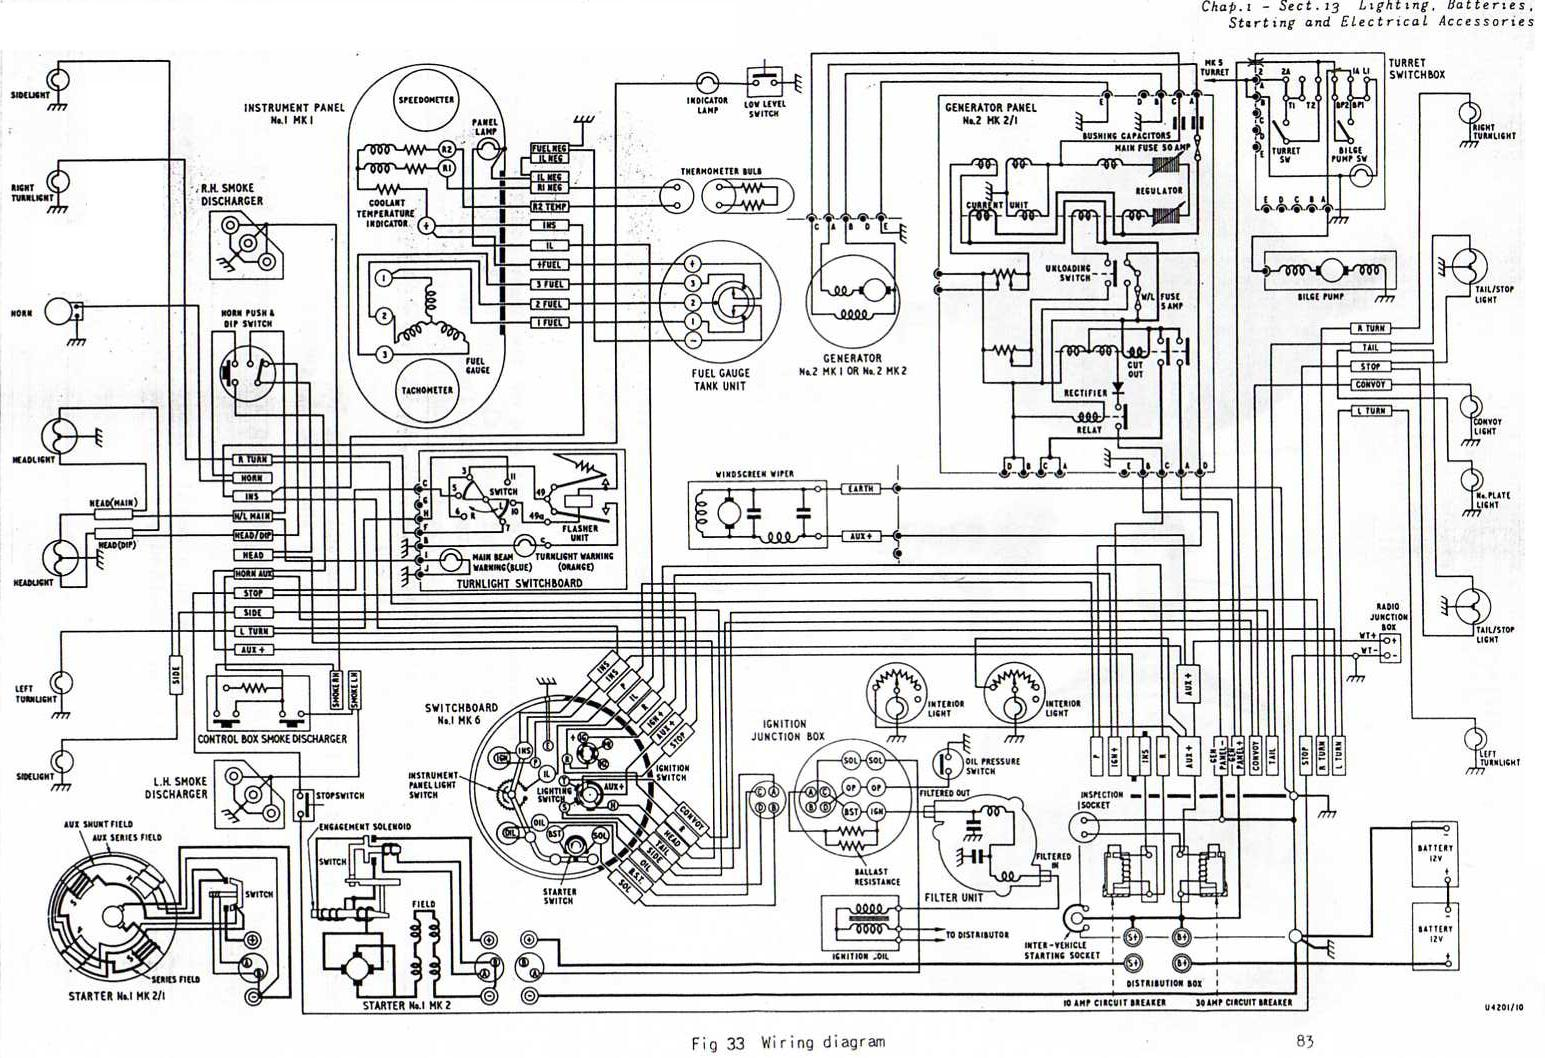 daimler ferret electrical equipment – Switchboard Wiring Diagram